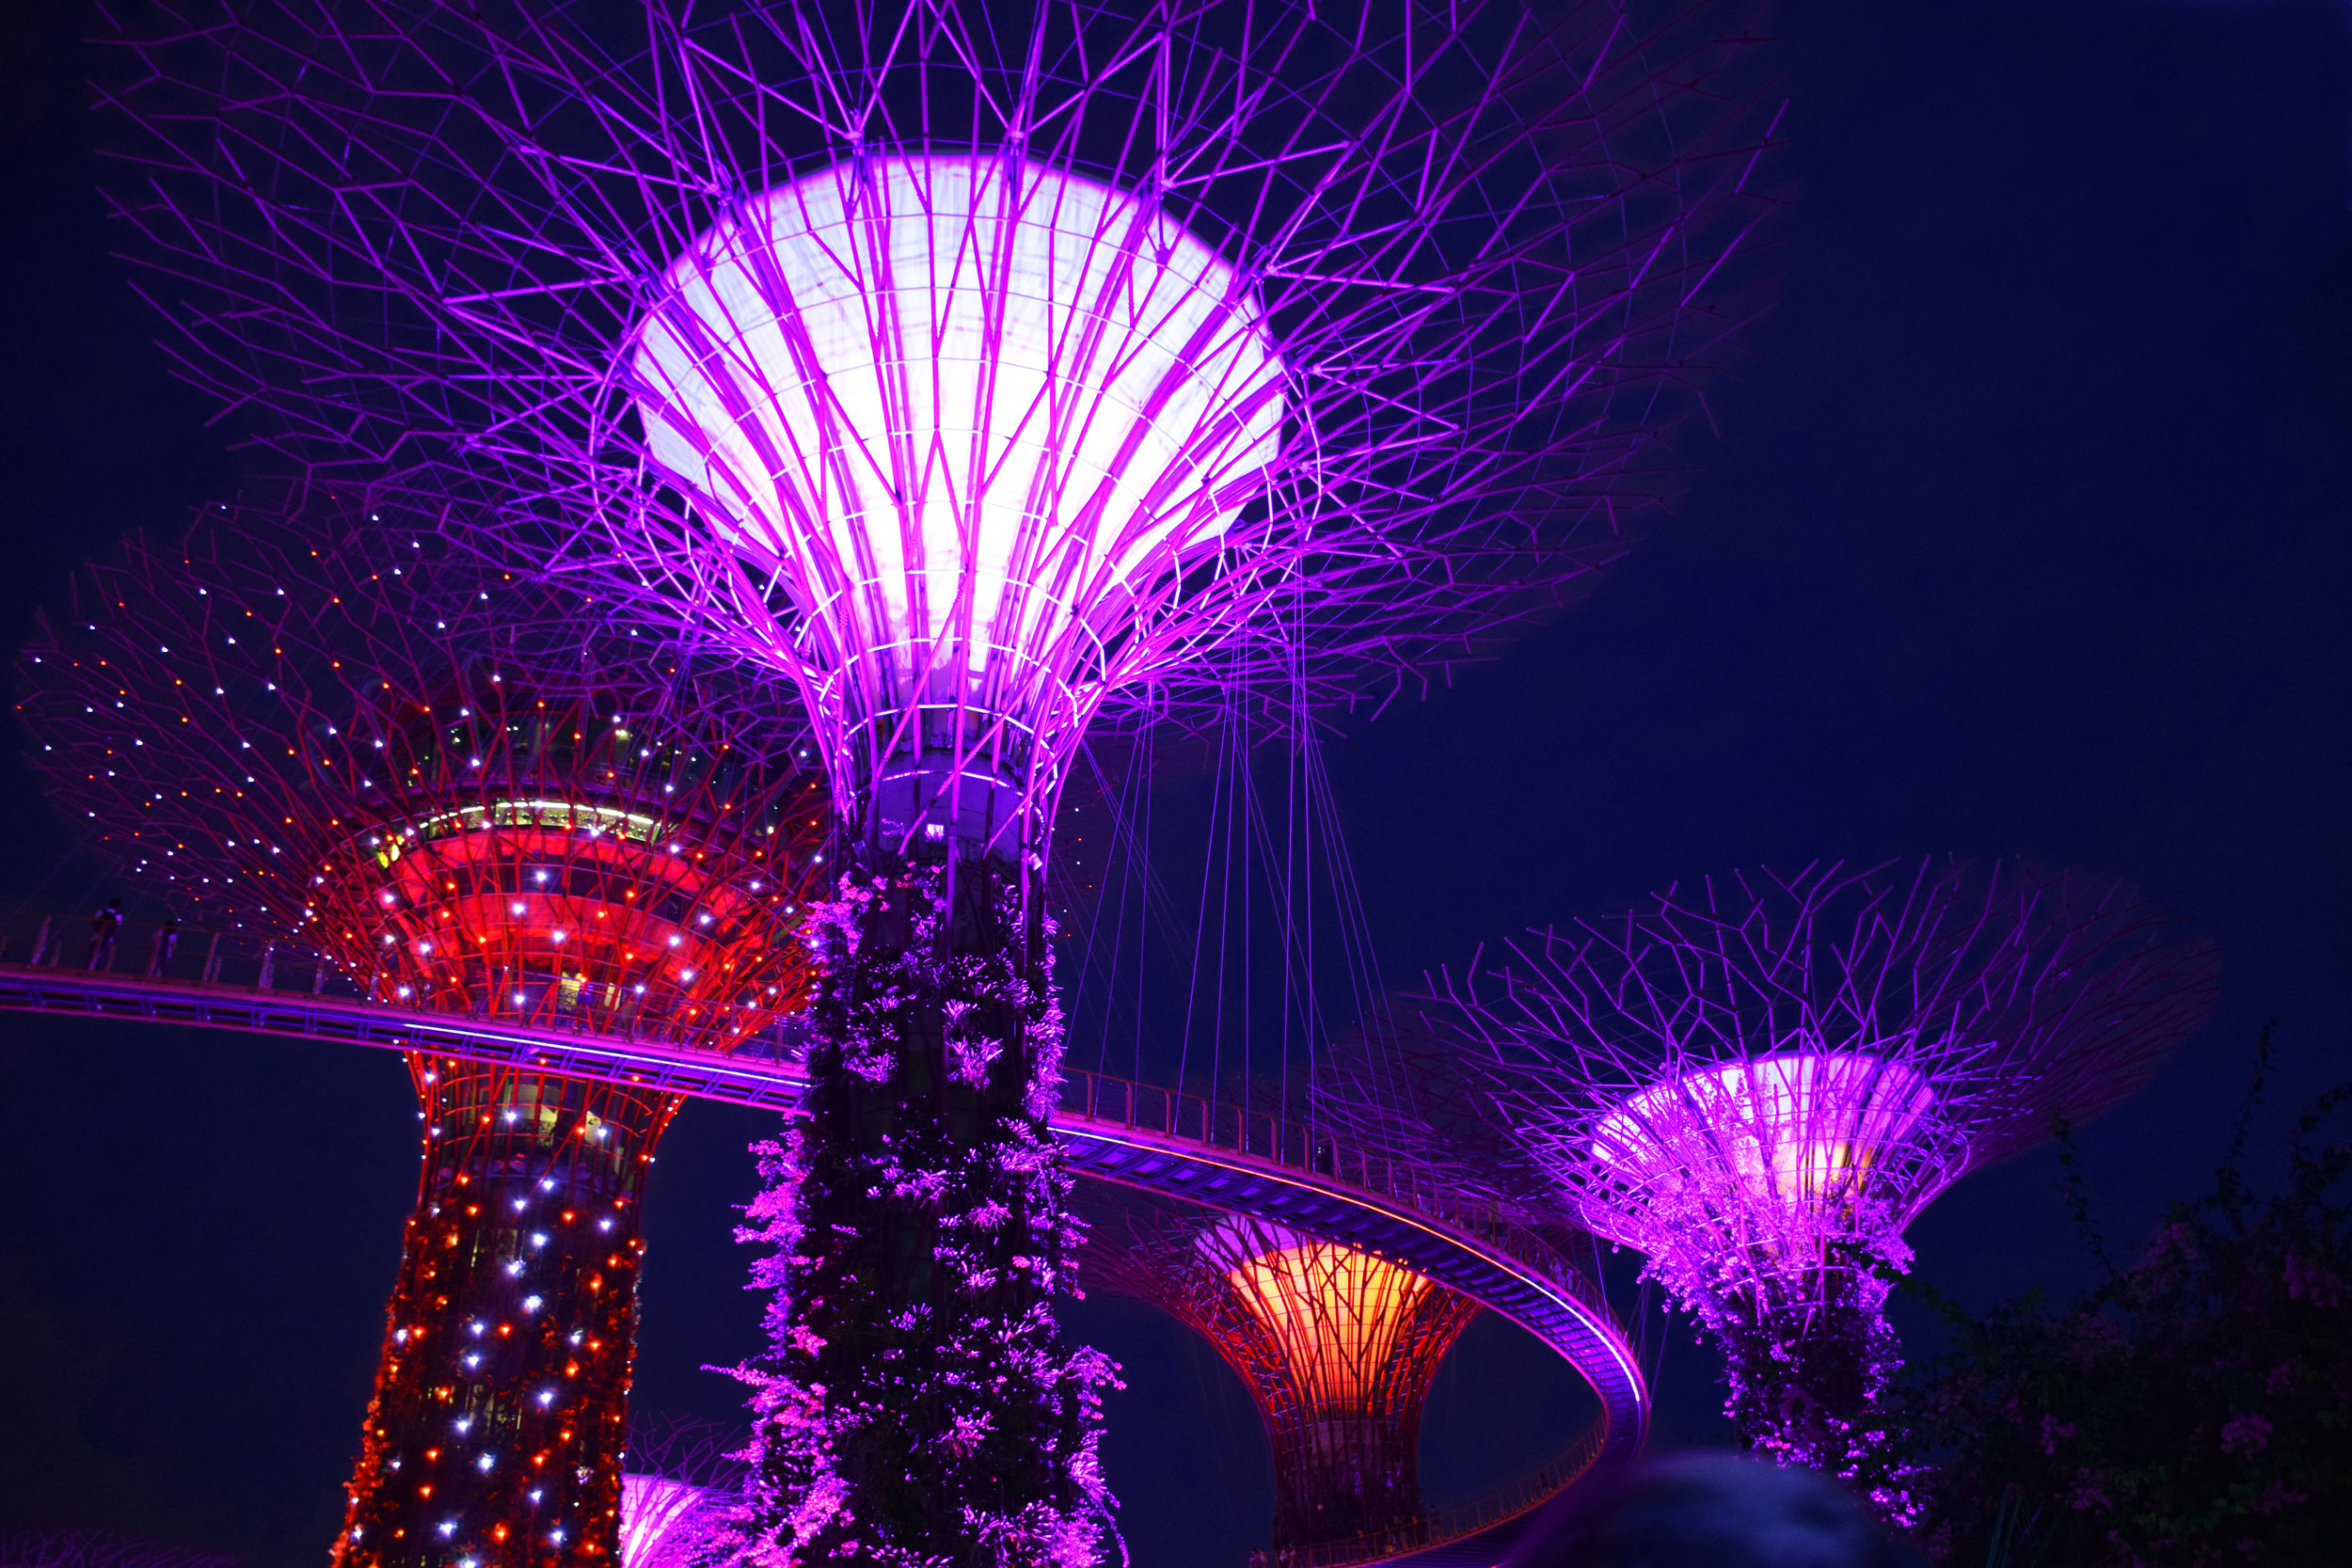 SINGAPORE - By Contributing Travel Editor Meg Jerrard